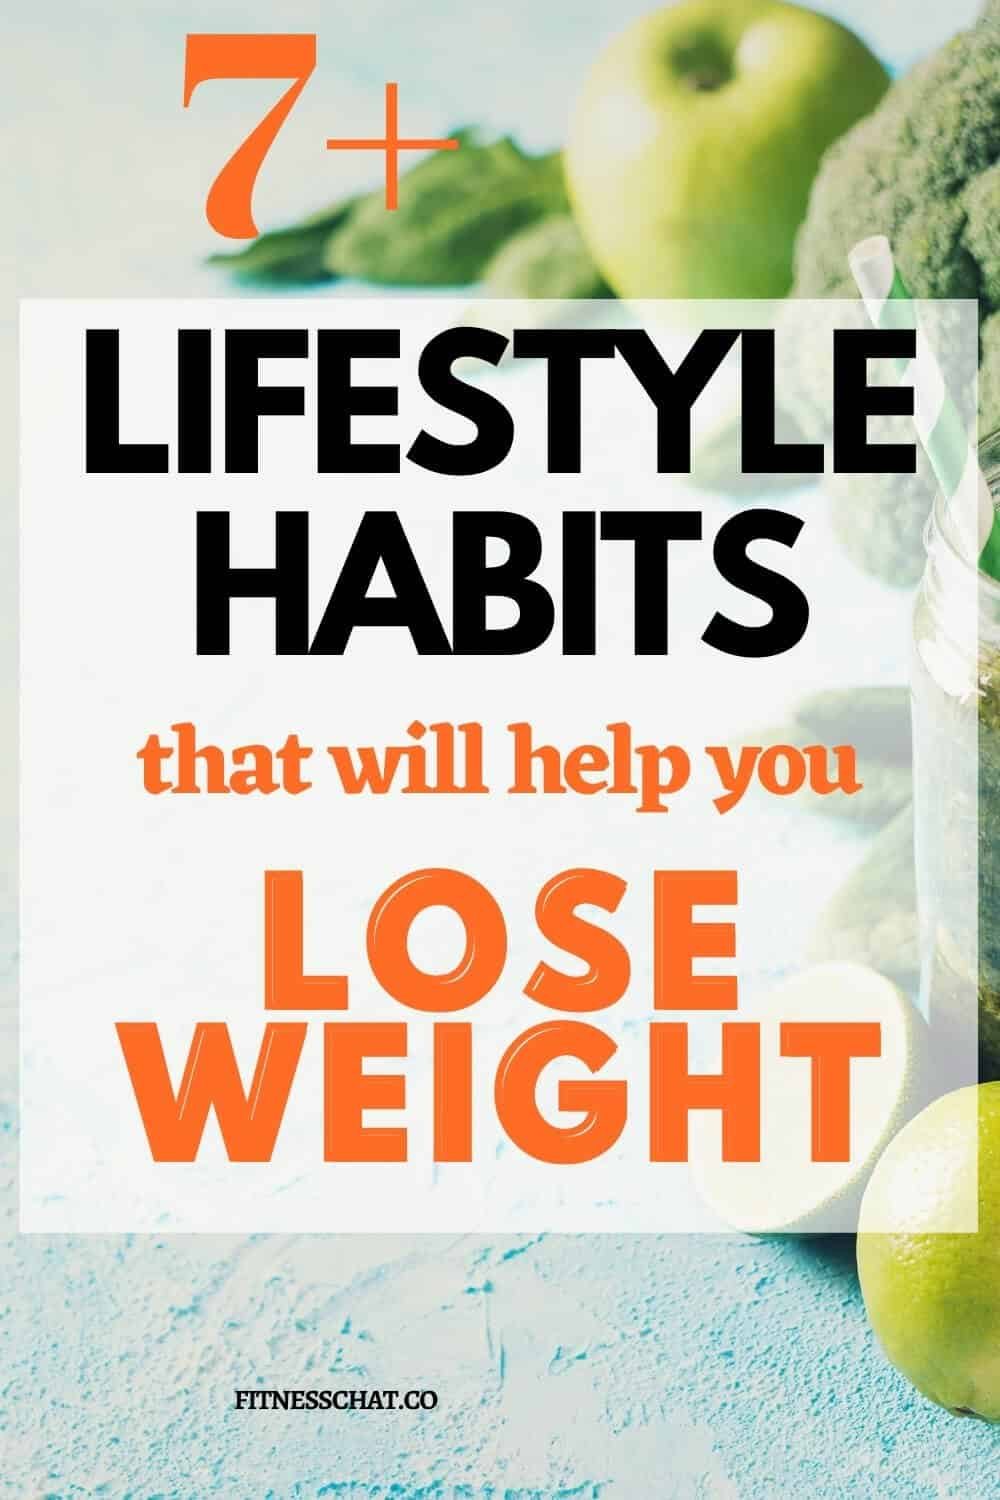 Small Lifestyle Habits That Will Help You Lose Weight